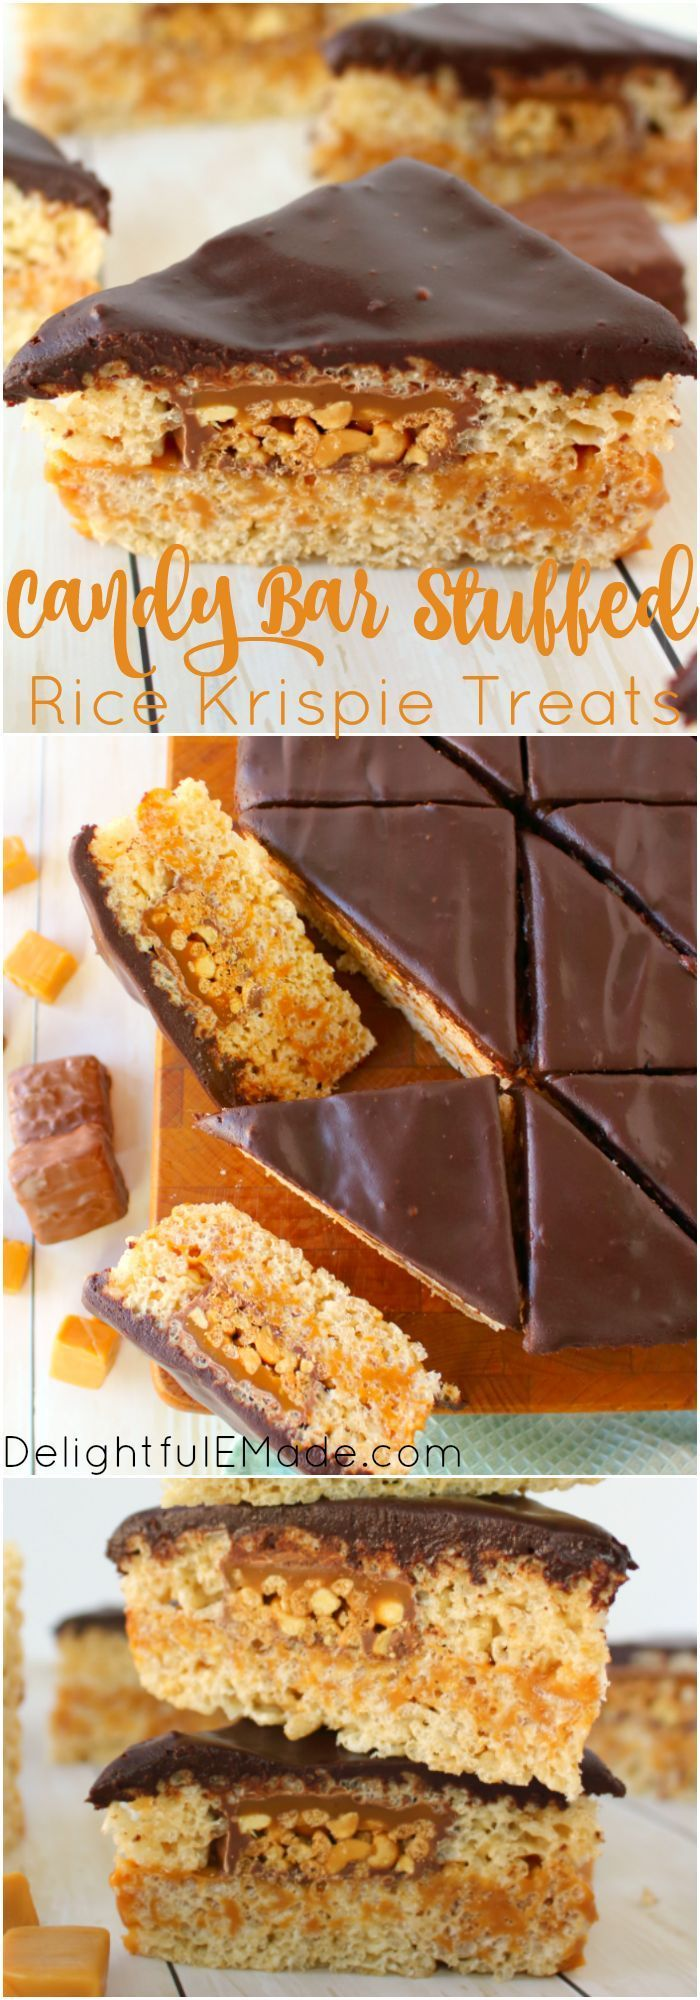 Cereal treats brought to a whole new glorious level! These Candy Bar Stuffed Rice Krispie Treats are loaded with SNICKERS Crisper bars, gooey caramel, all between layers of marshmallow cereal treats and topped with a thick layer of chocolate! #Delightfule